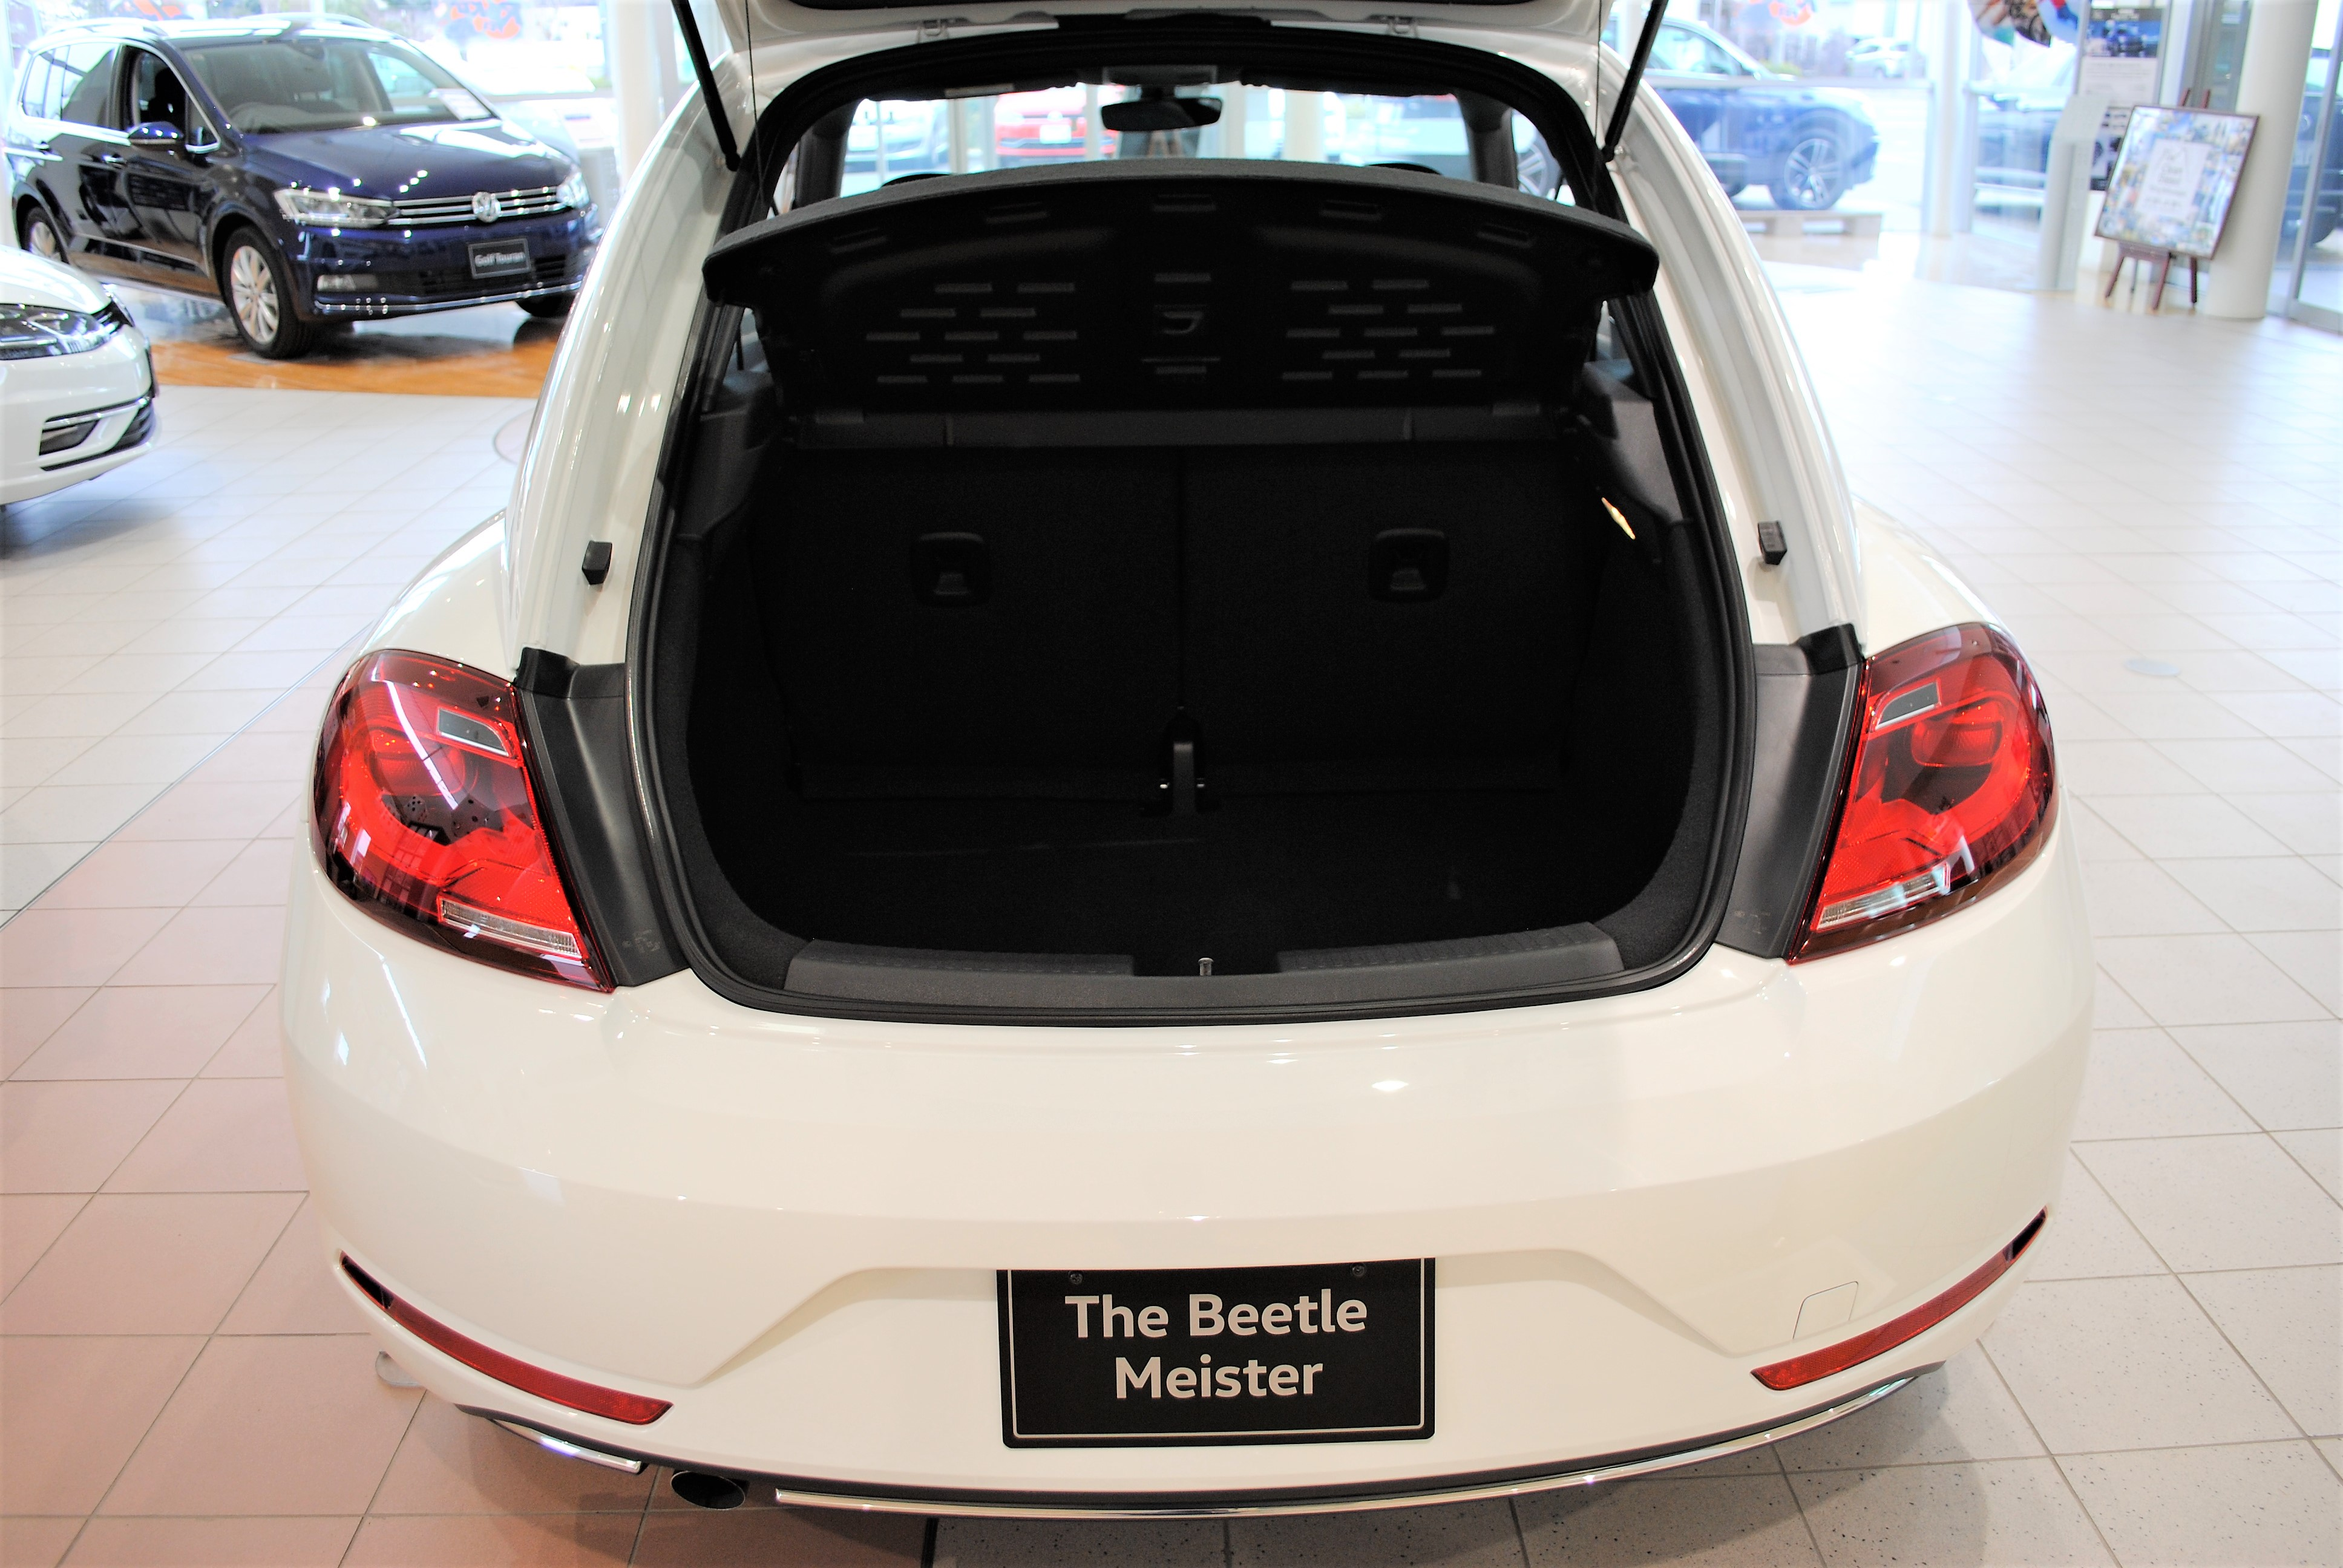 The Beetle Design Meisterの画像2